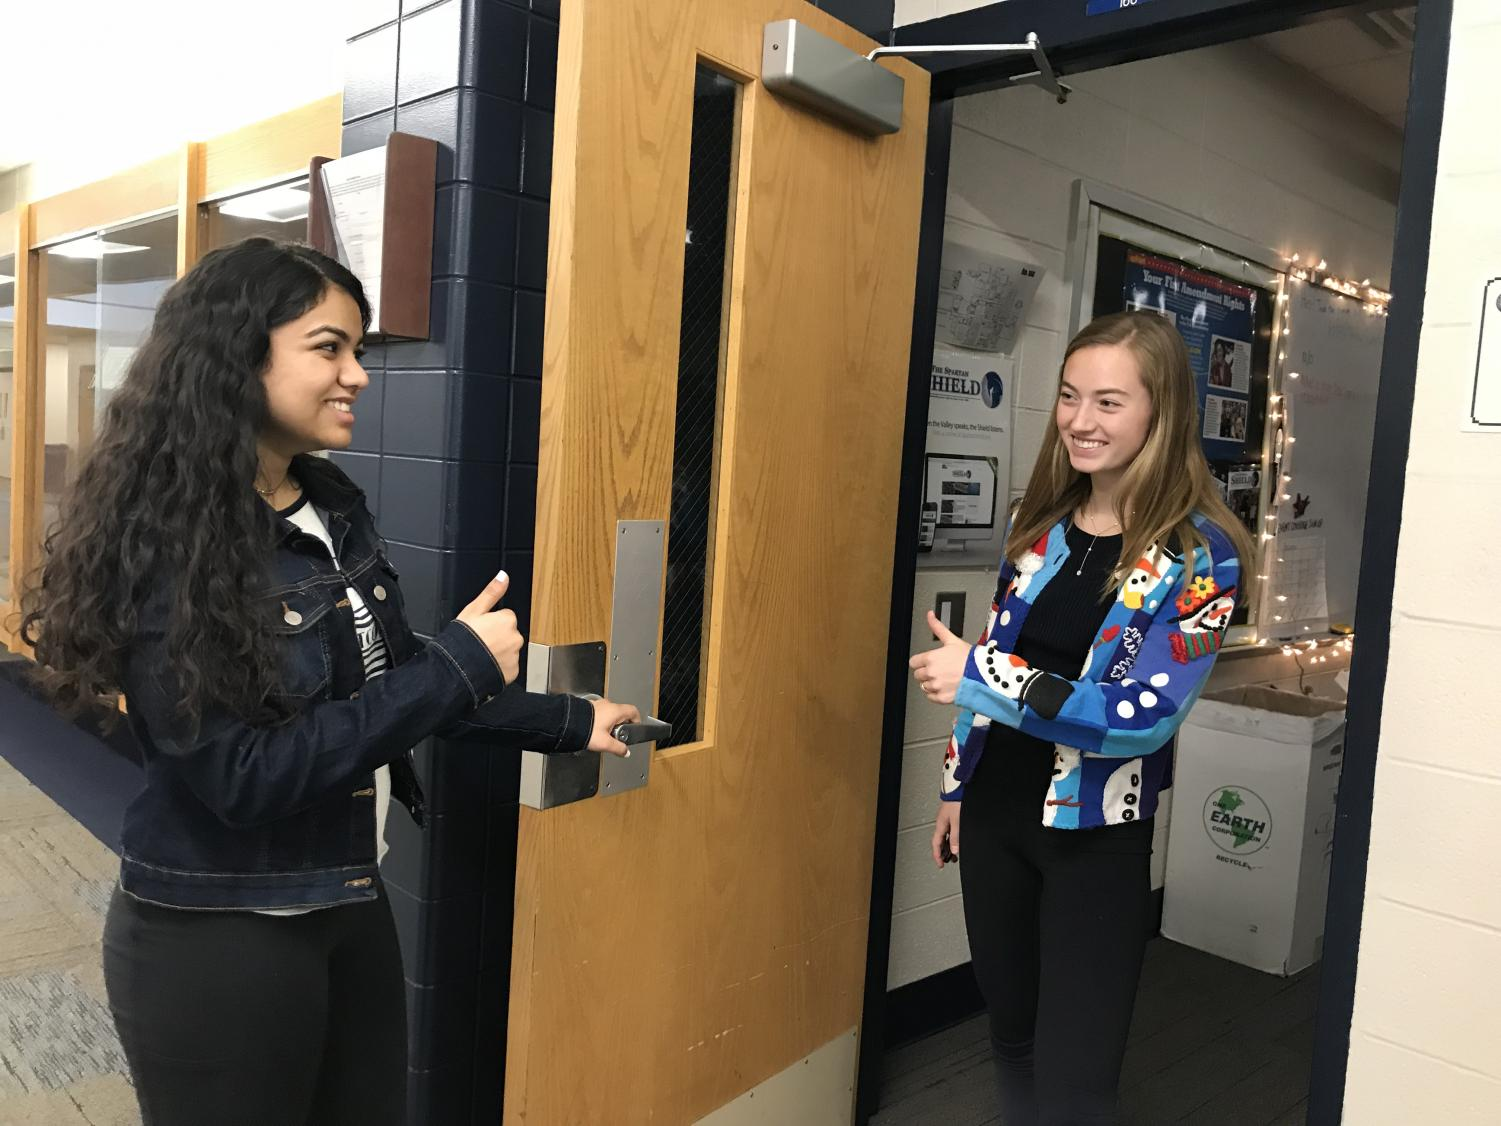 Seniors Divya Vashisht and Christy Bishop embrace the Christmas season and represent the pay-it-forward movement